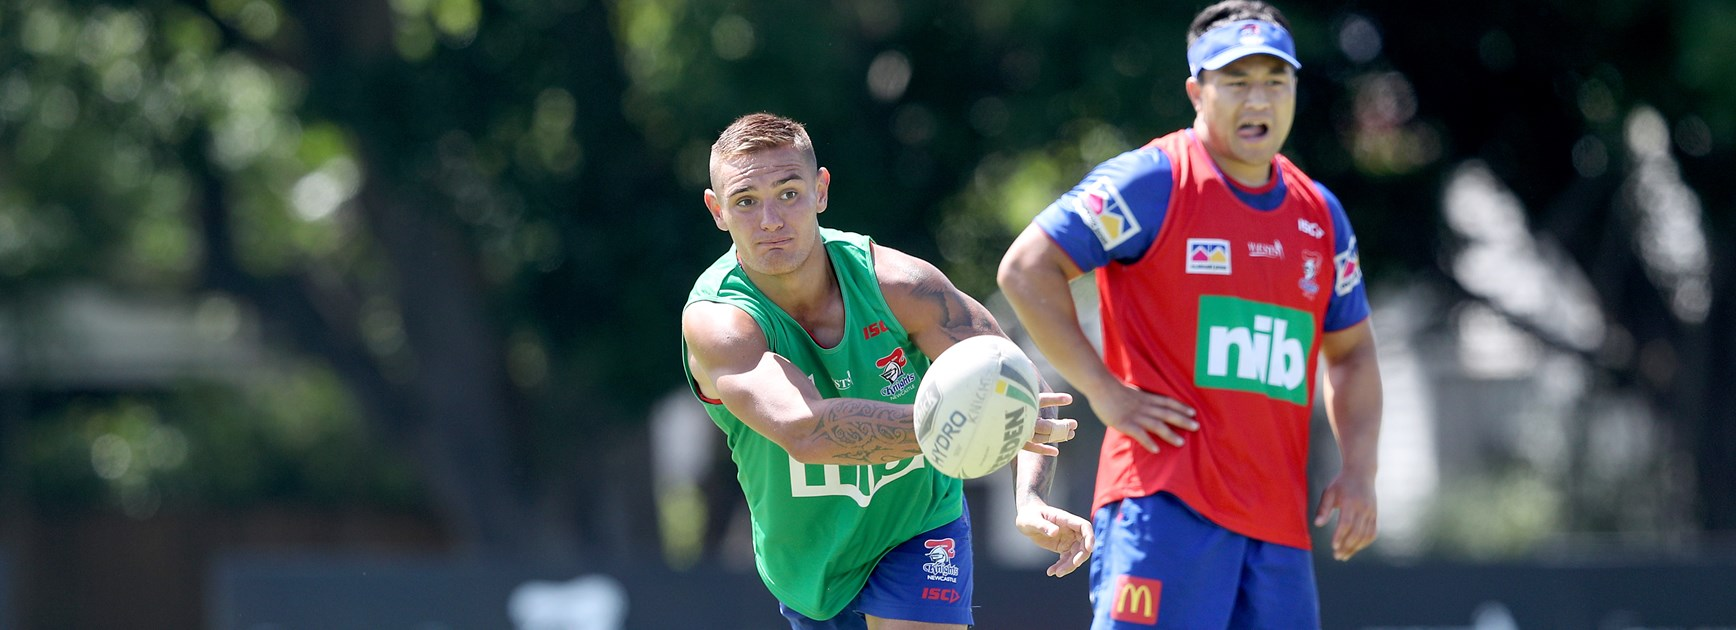 Levi chasing No.9 jersey and Kiwis jumper